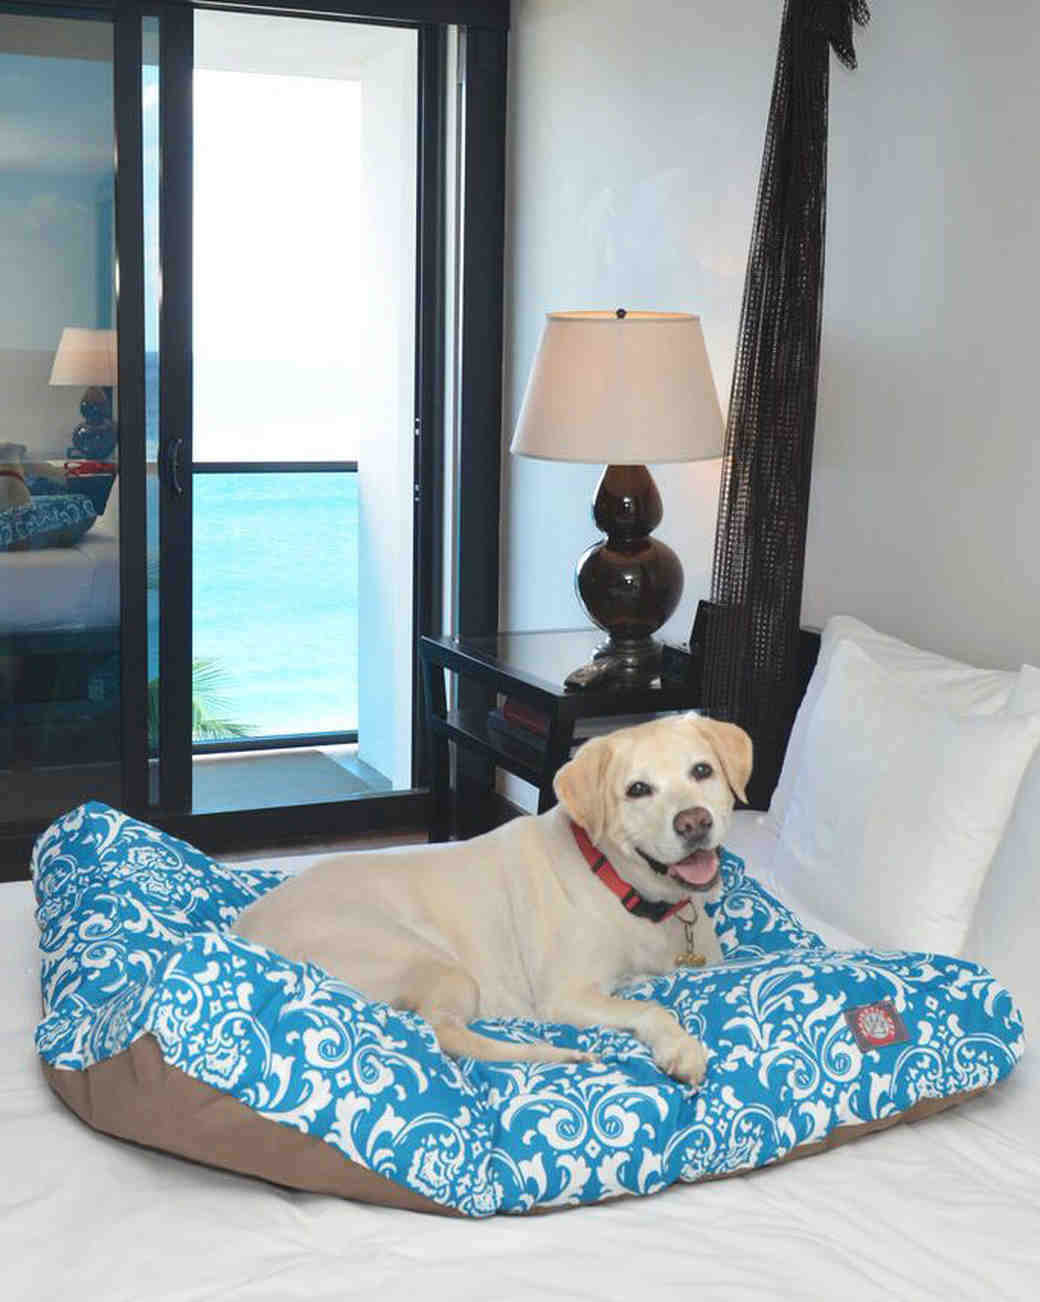 tideline pet friendly hotel